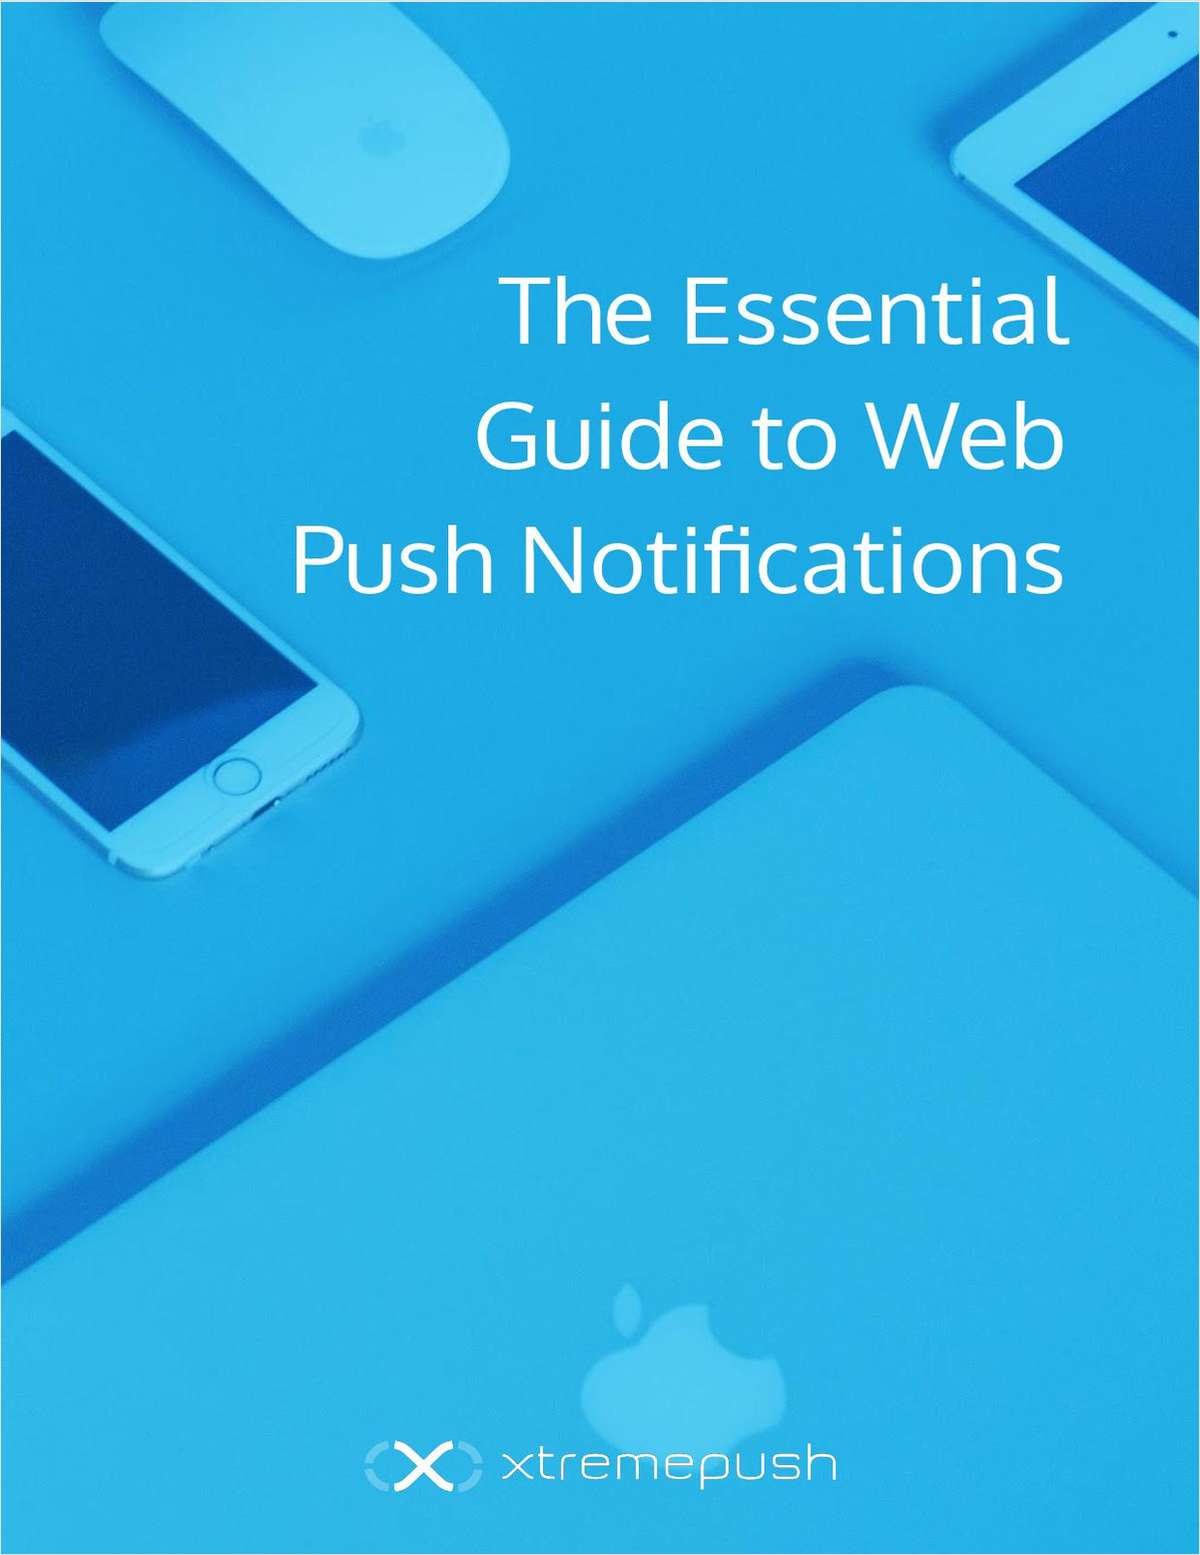 The Essential Guide to Web Push Notifications